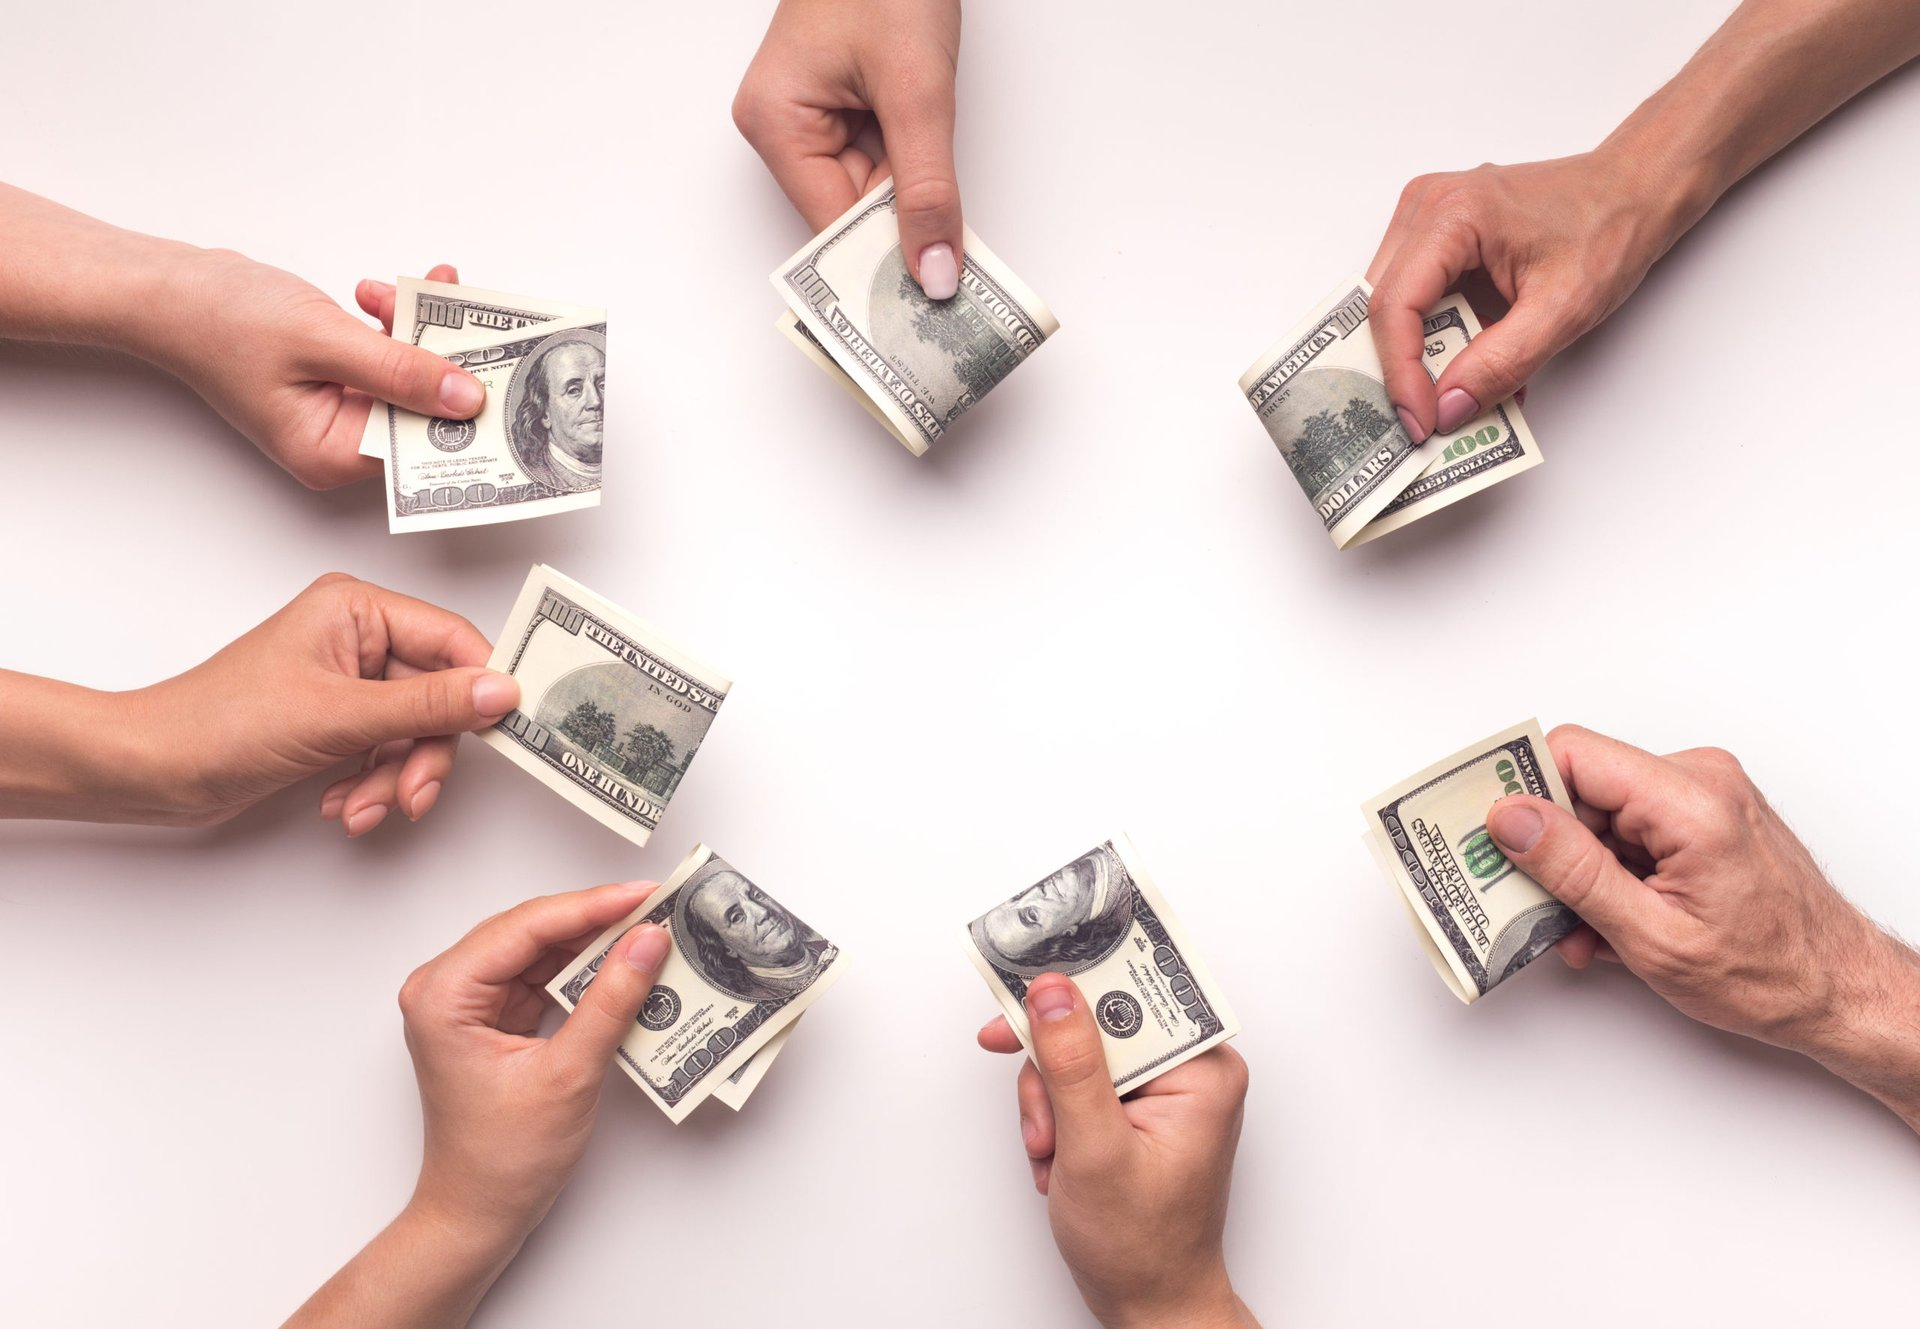 Crowdfunding hands with money